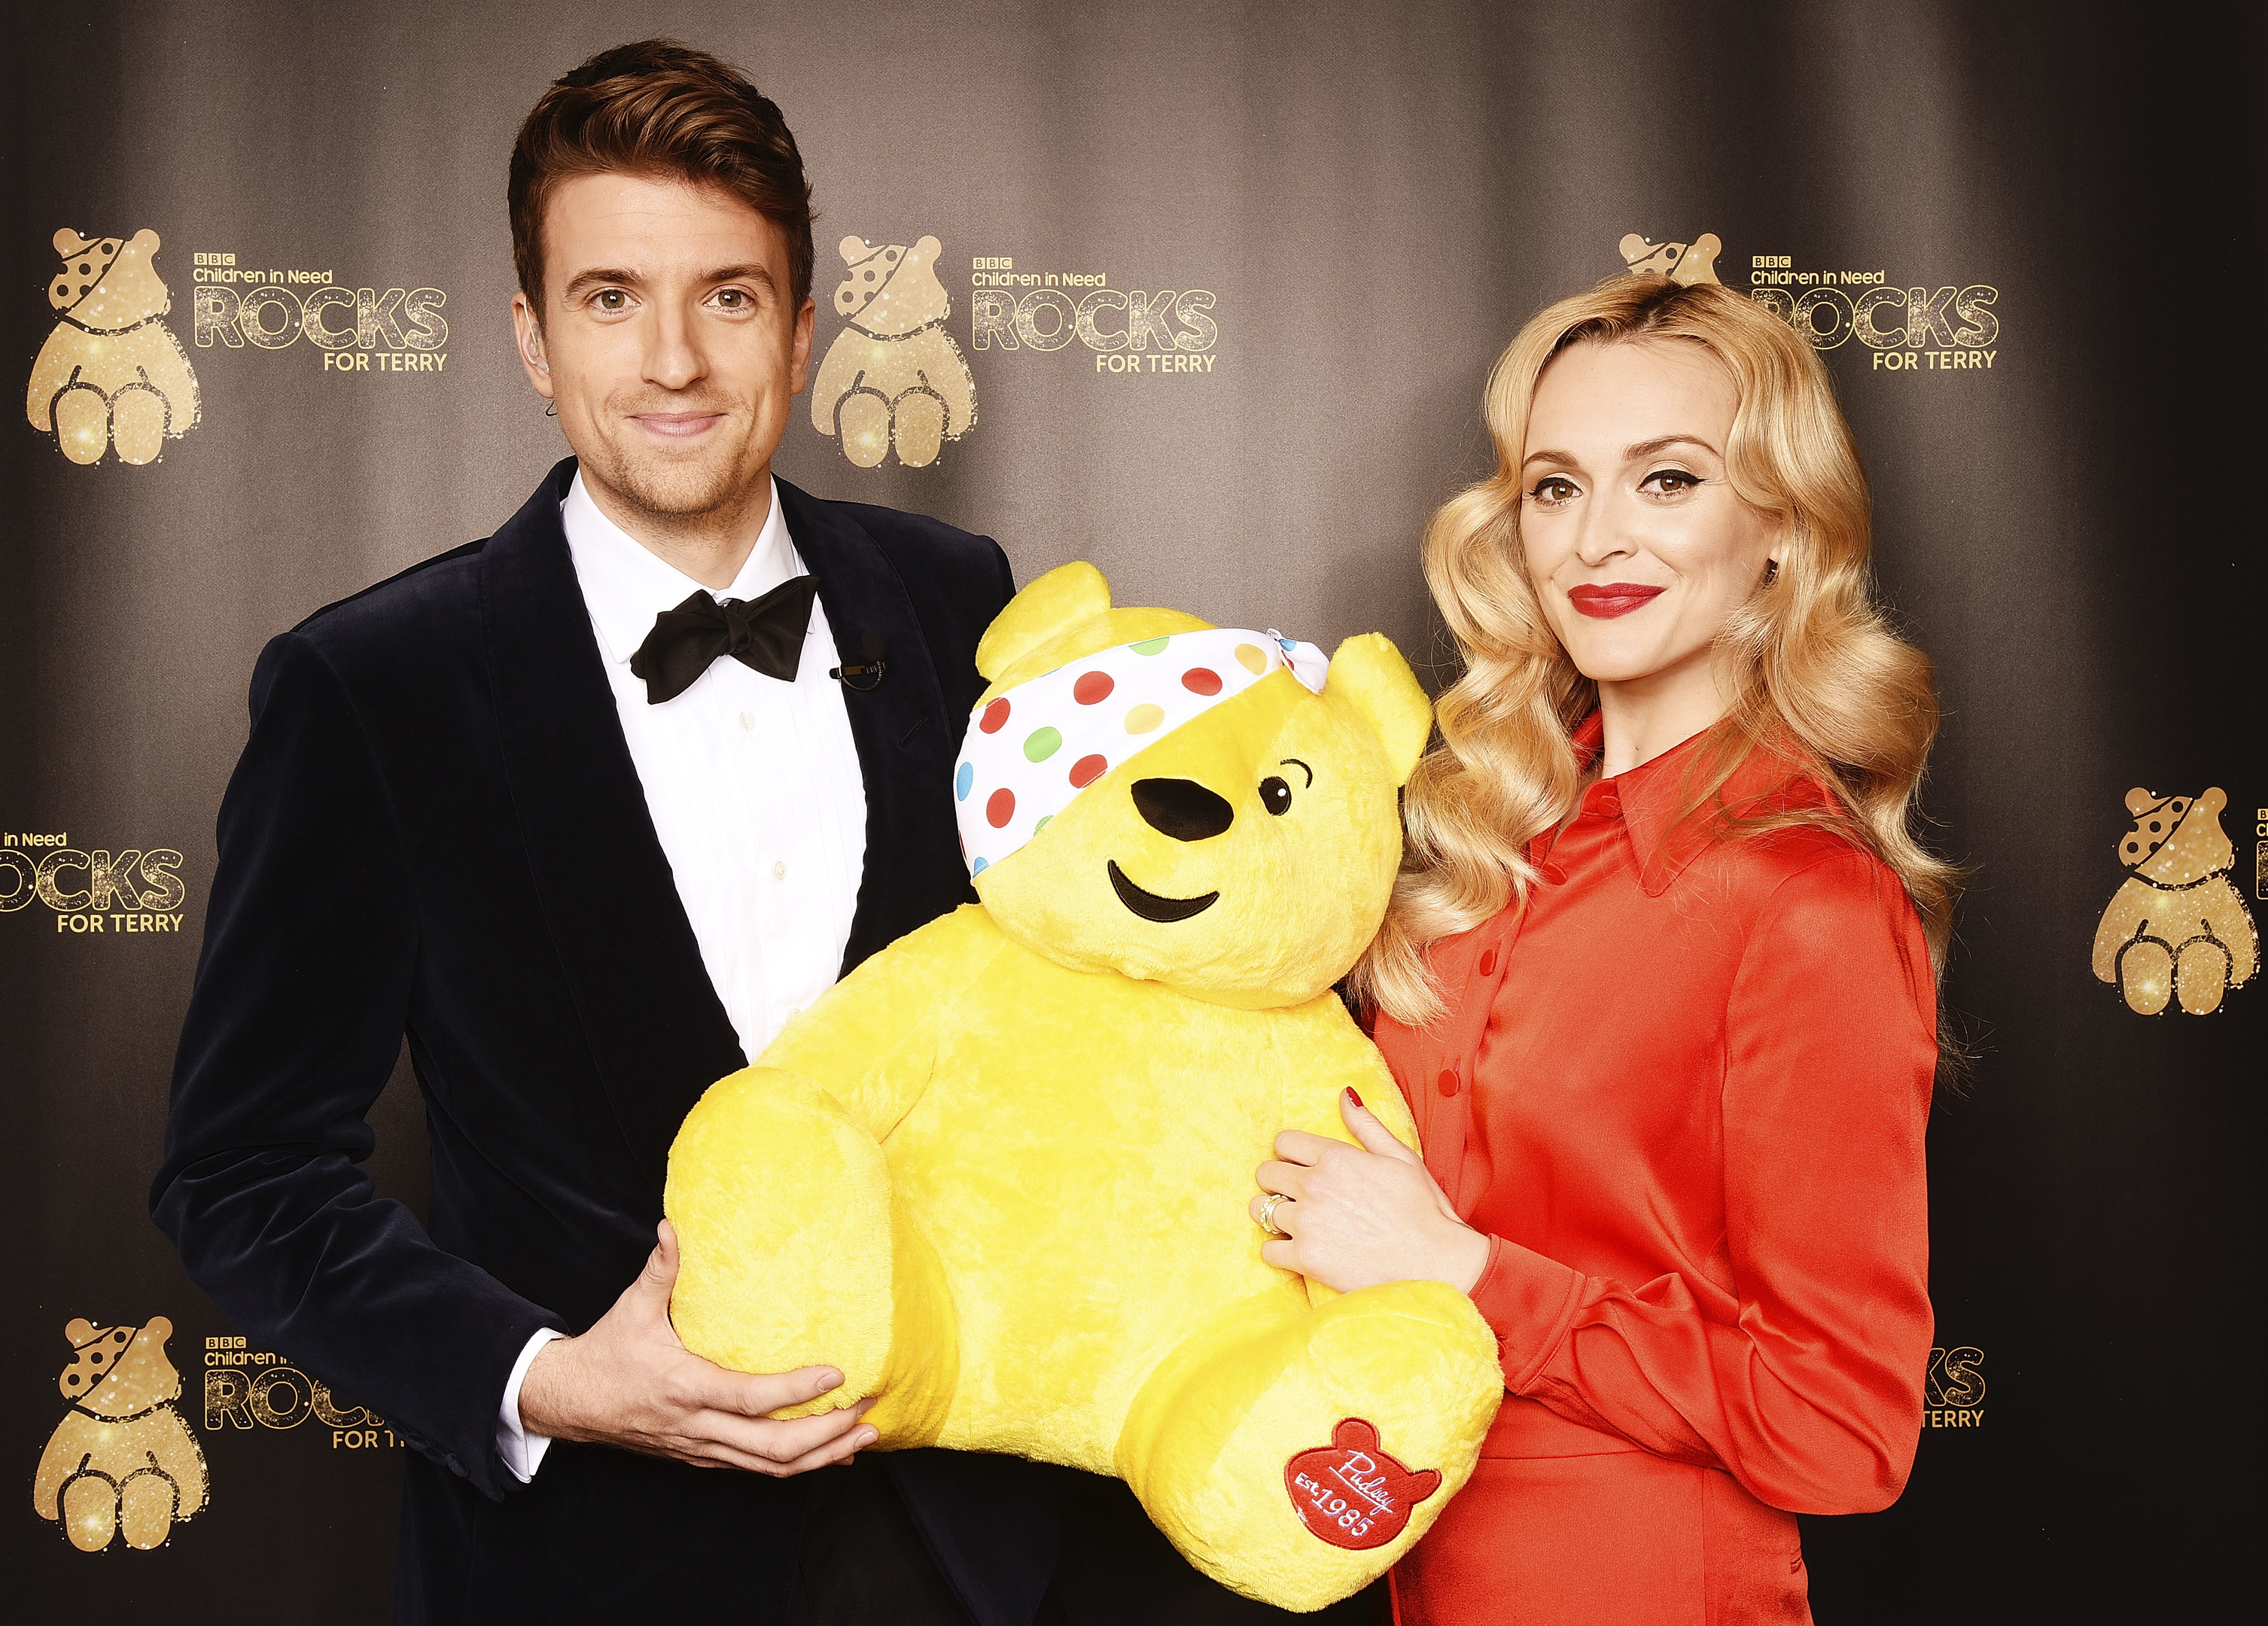 Greg James (L) and Fearne Cotton support BBC Children in Need Rocks for Terry at Royal Albert Hall on November 1, 2016 in London, England. (Dave J Hogan/Dave J Hogan/Getty Images)